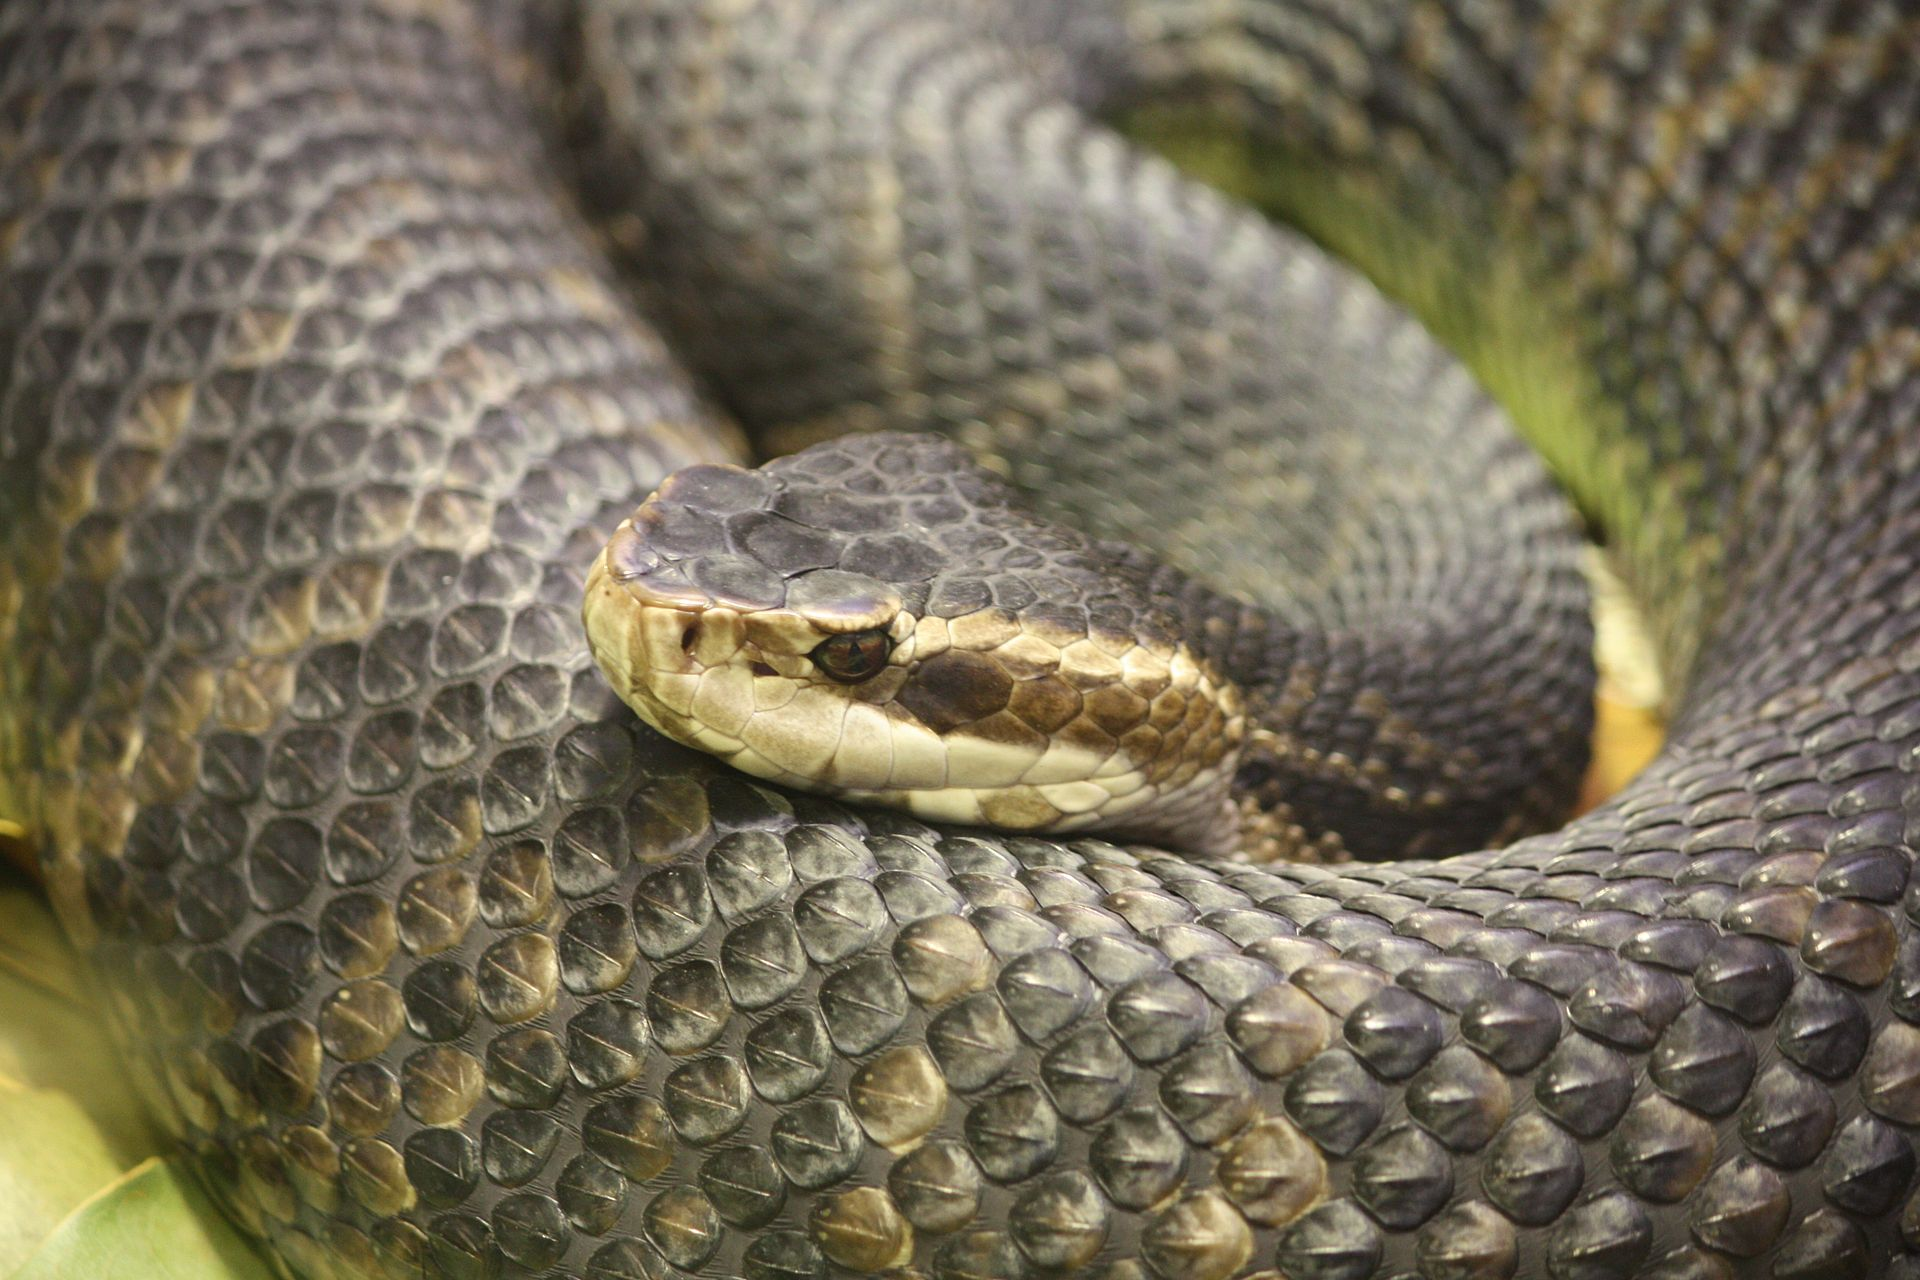 The Top 10 Deadliest Snakes in North America - Bond Arms